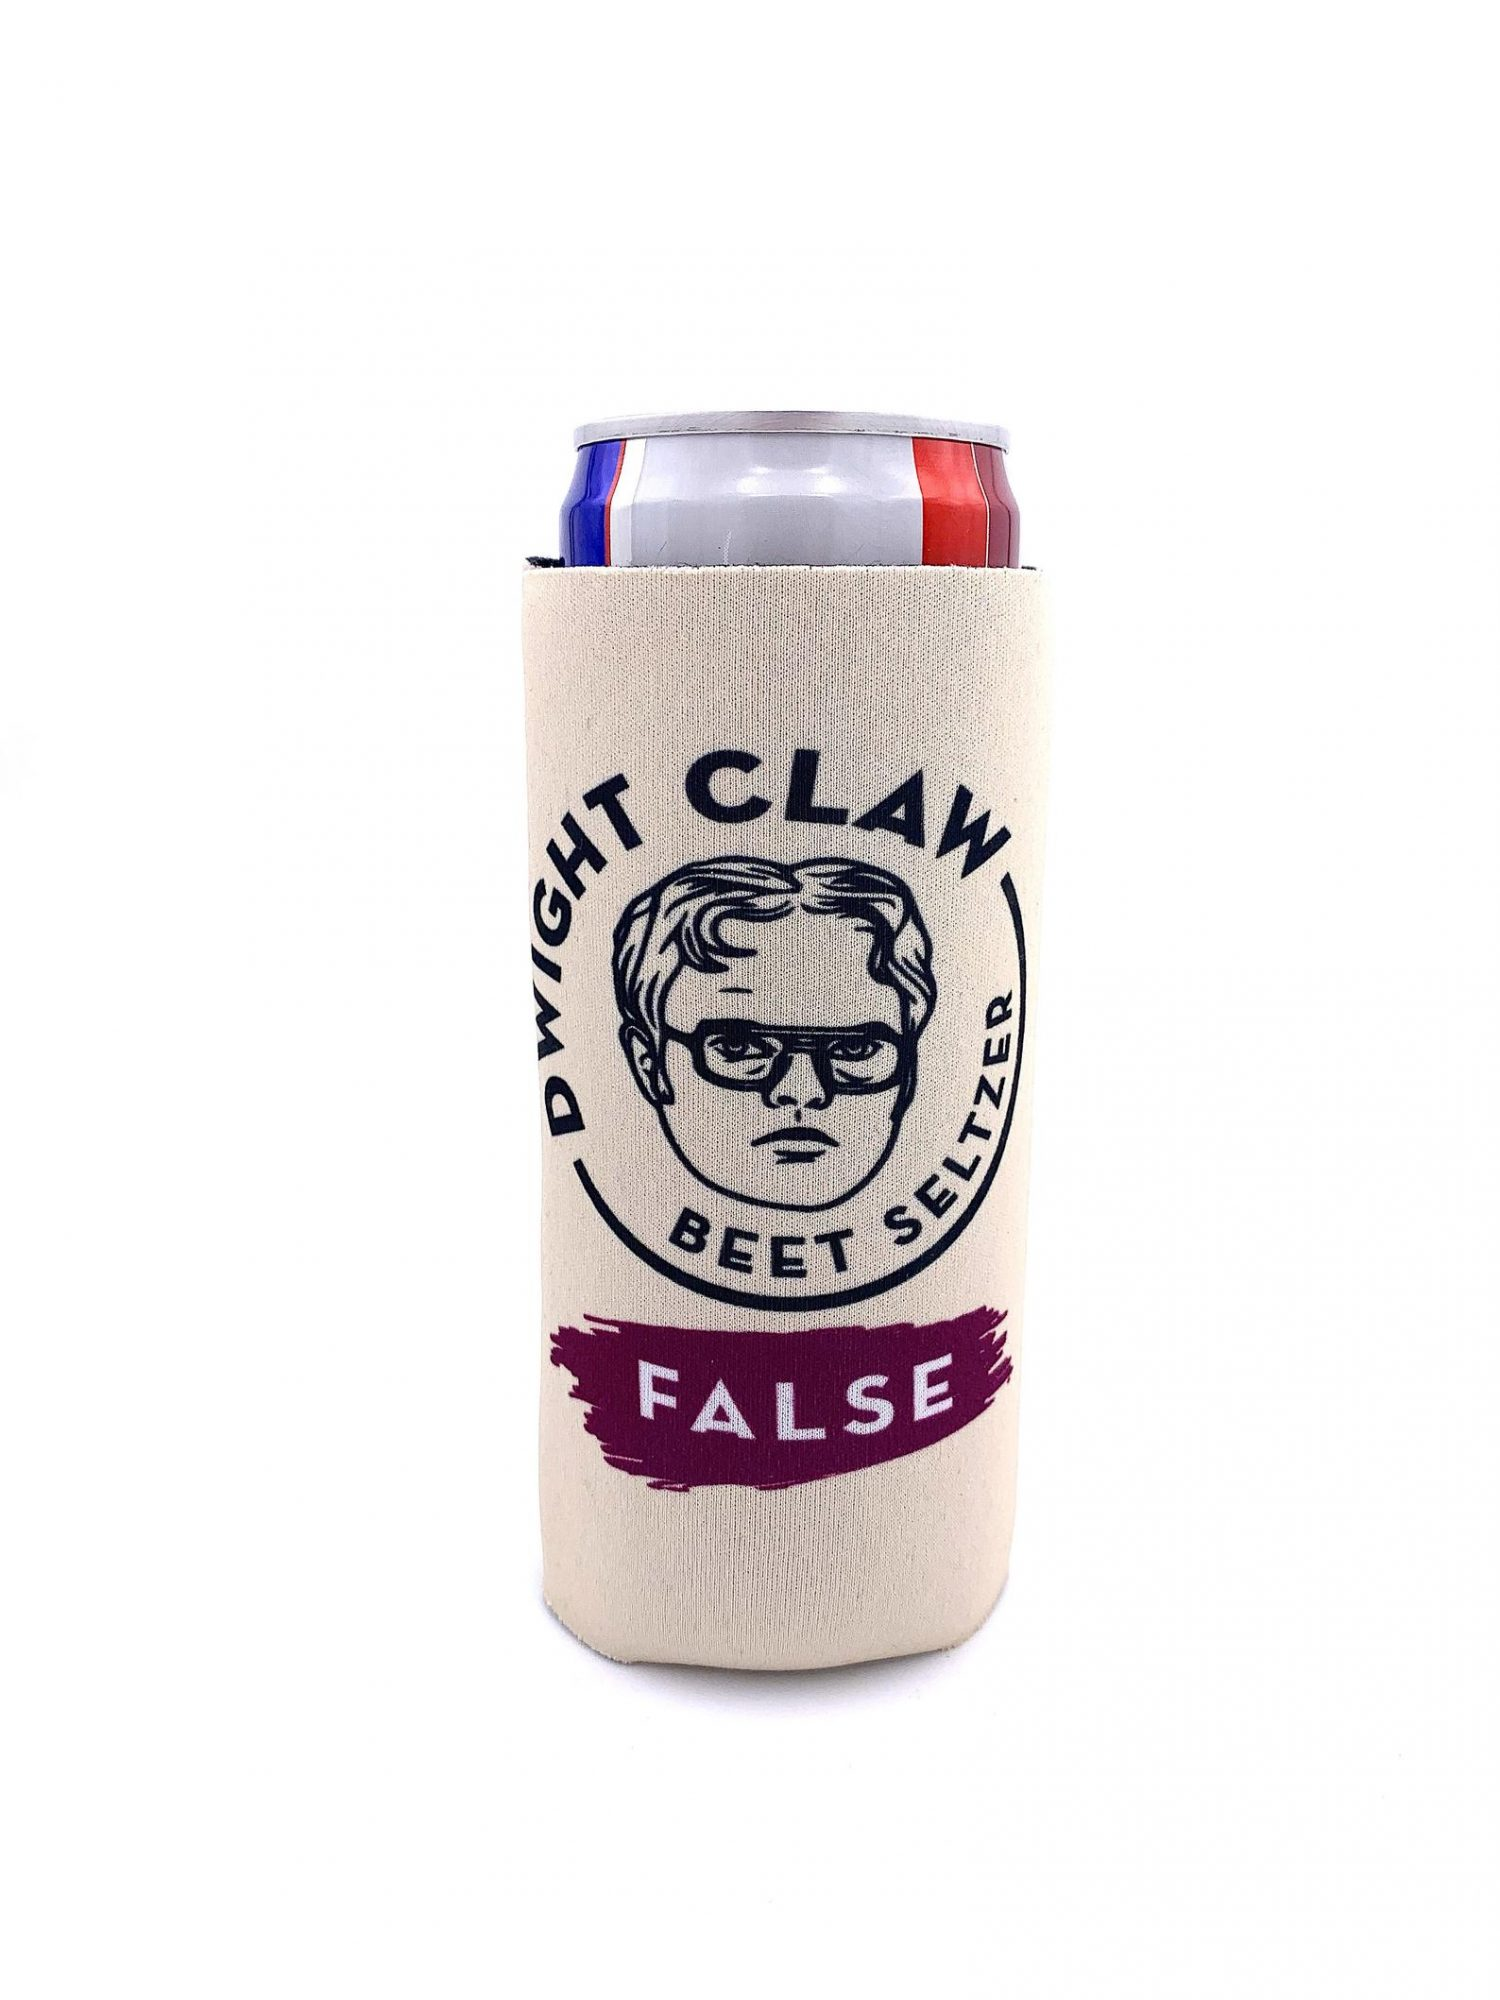 Dwight Schrute coozie white elephant gift ideas